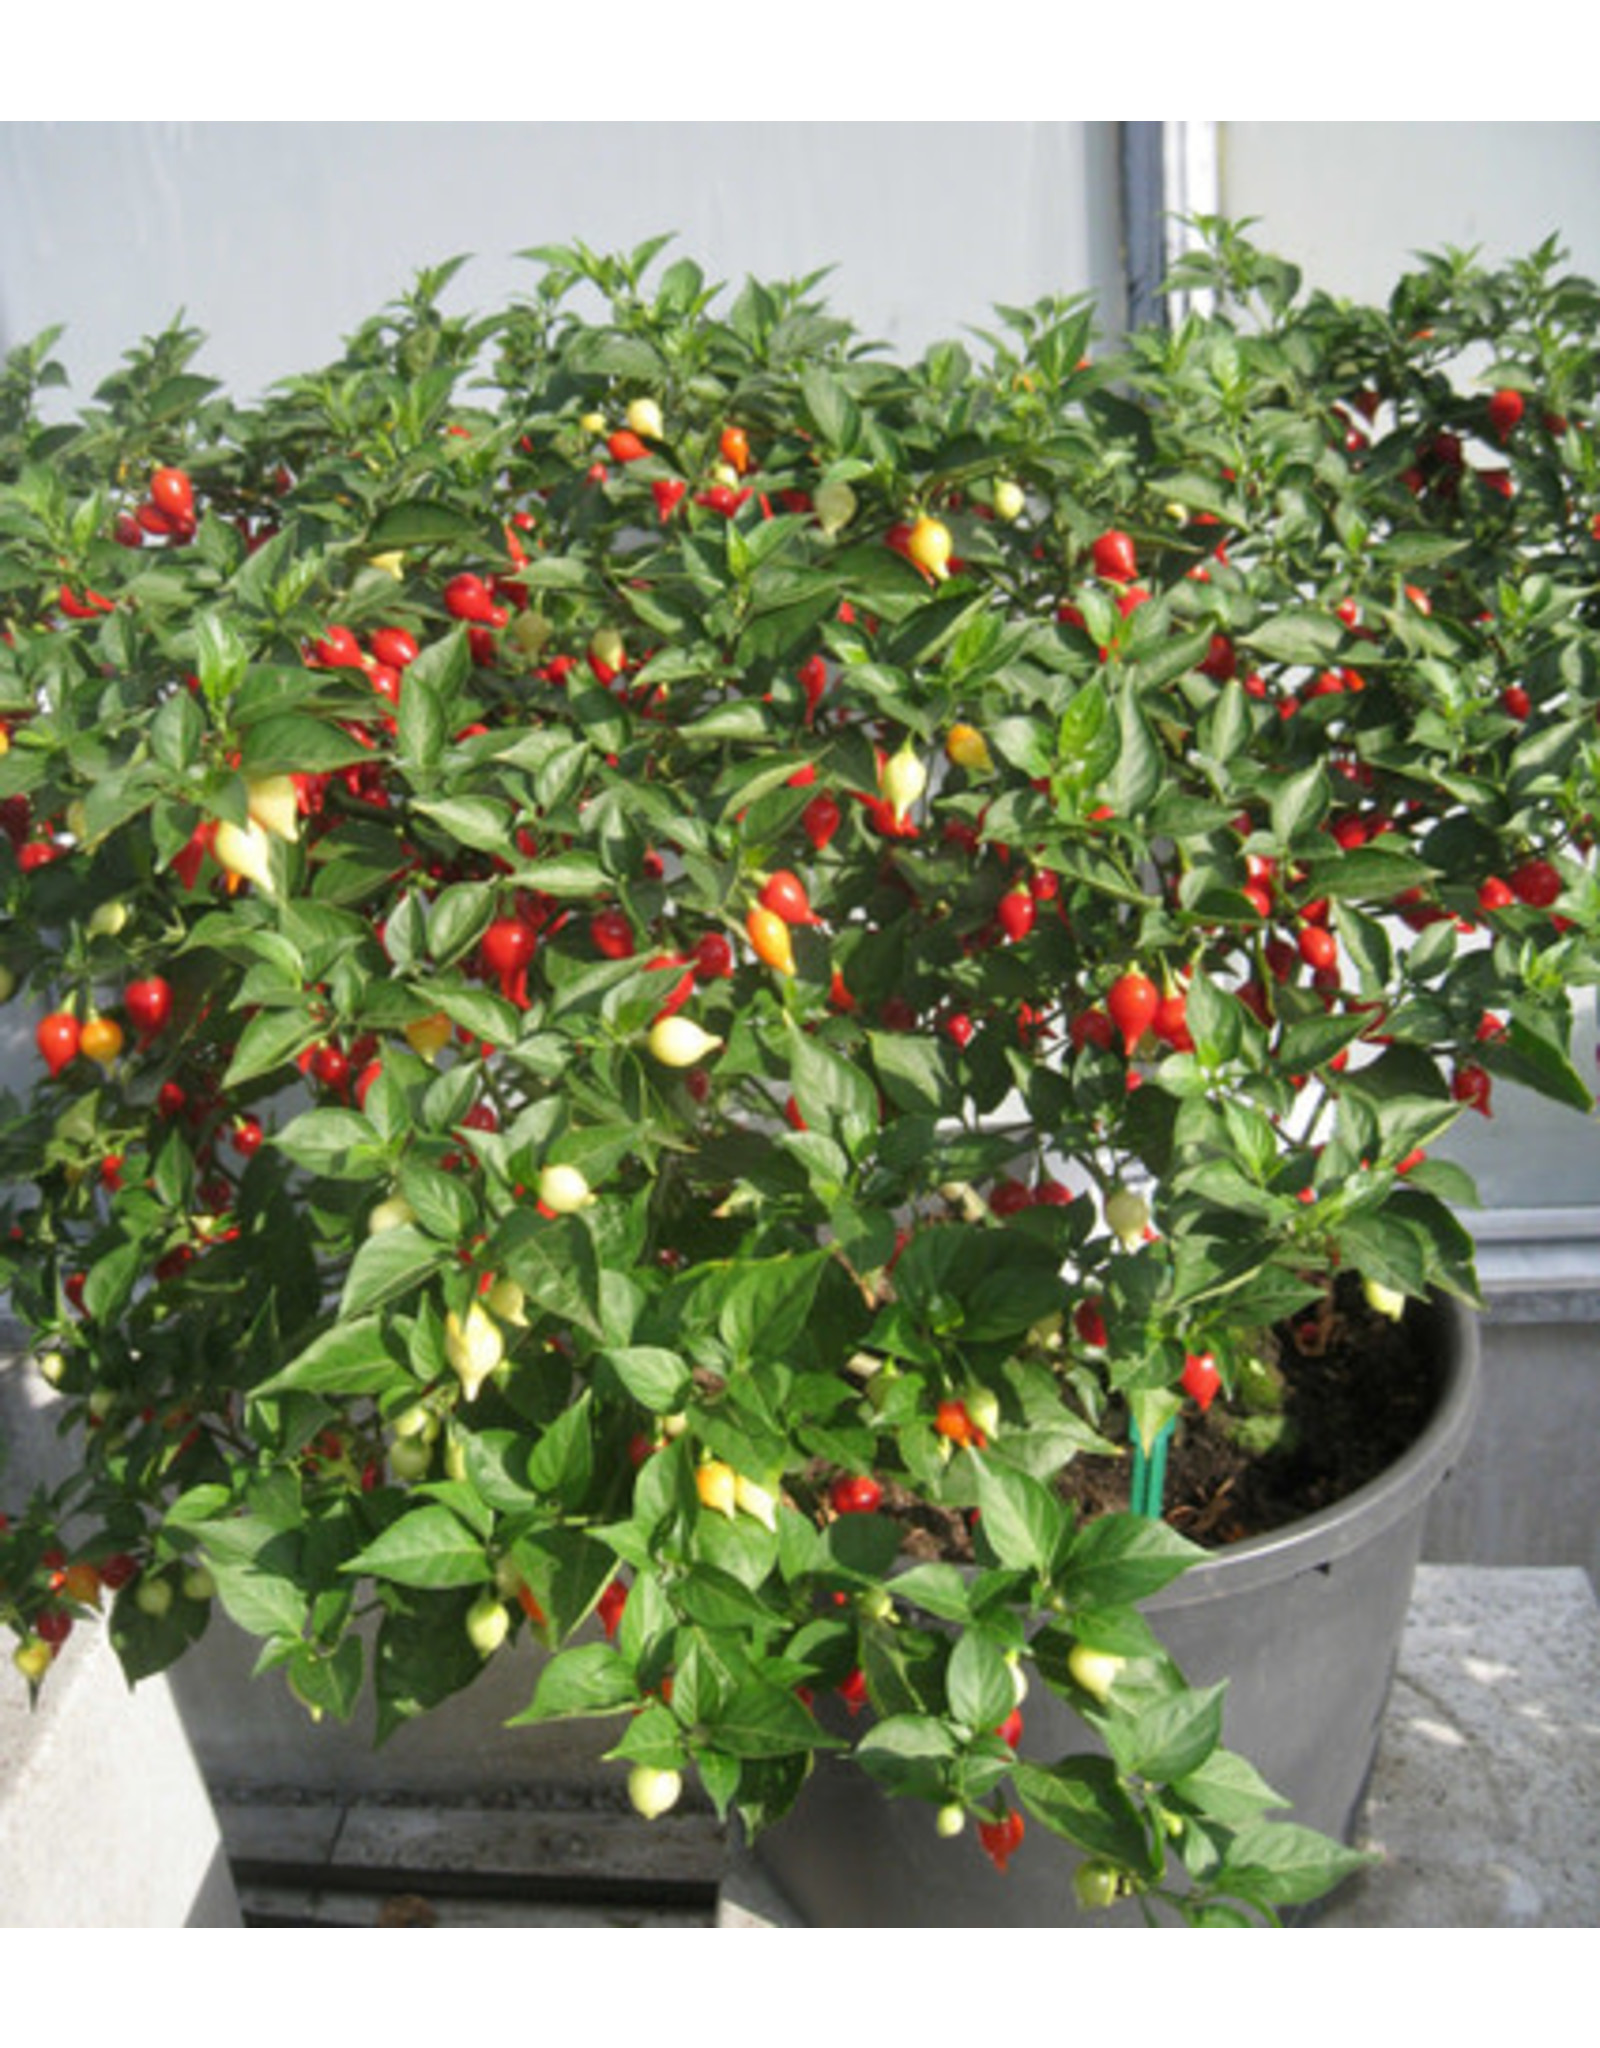 Button Mix Chili Pepper Seeds (Aimers International) 2910